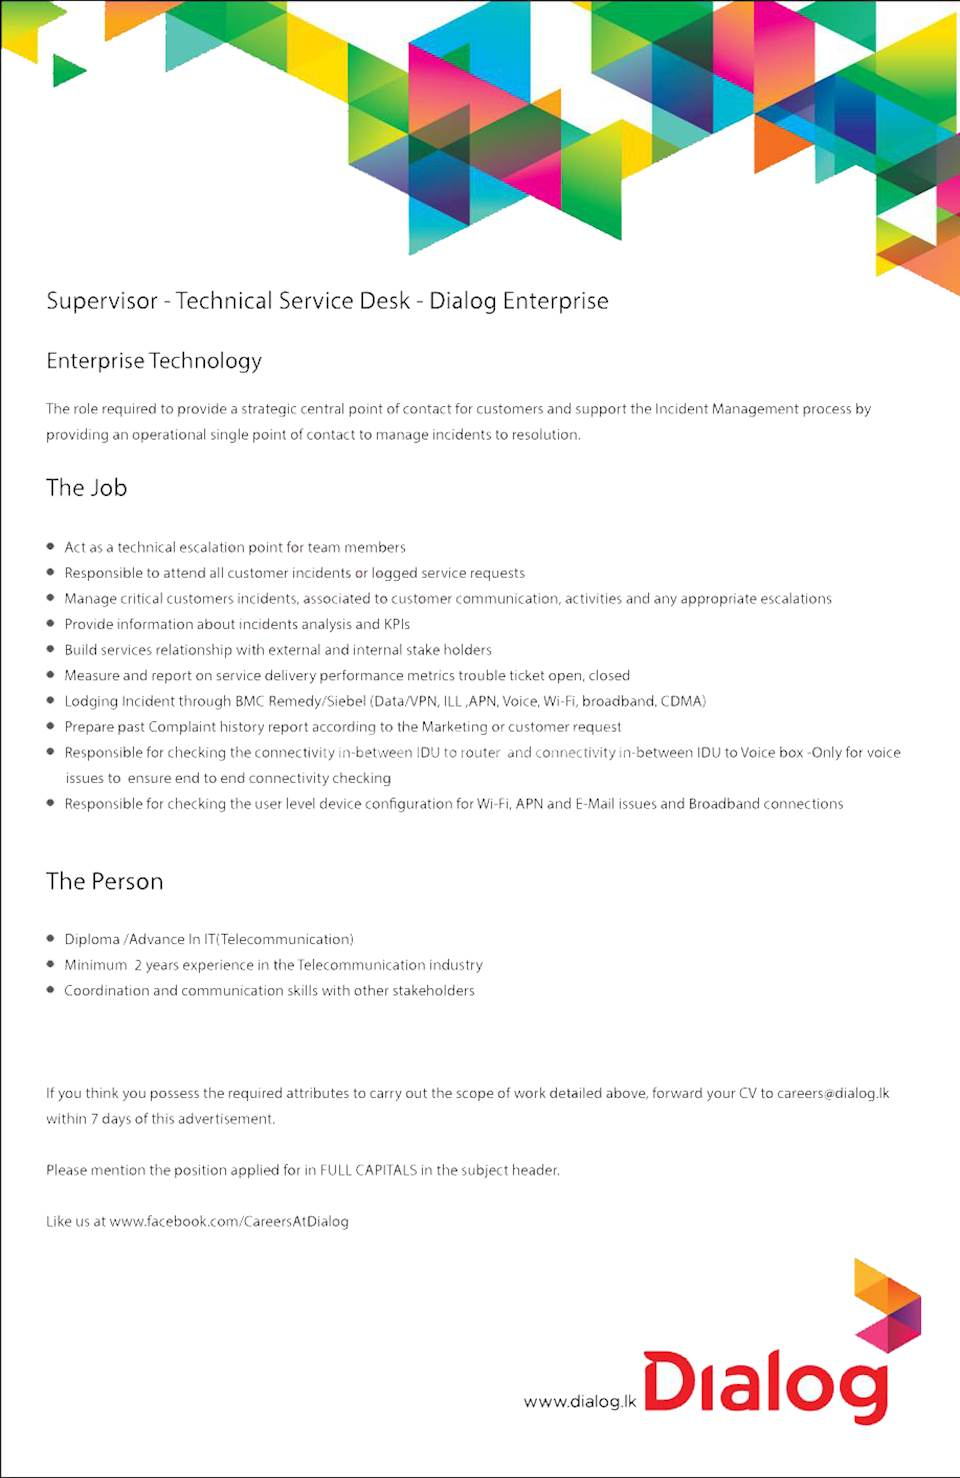 Supervisor - Technical Service Desk - Dialog Enterprise